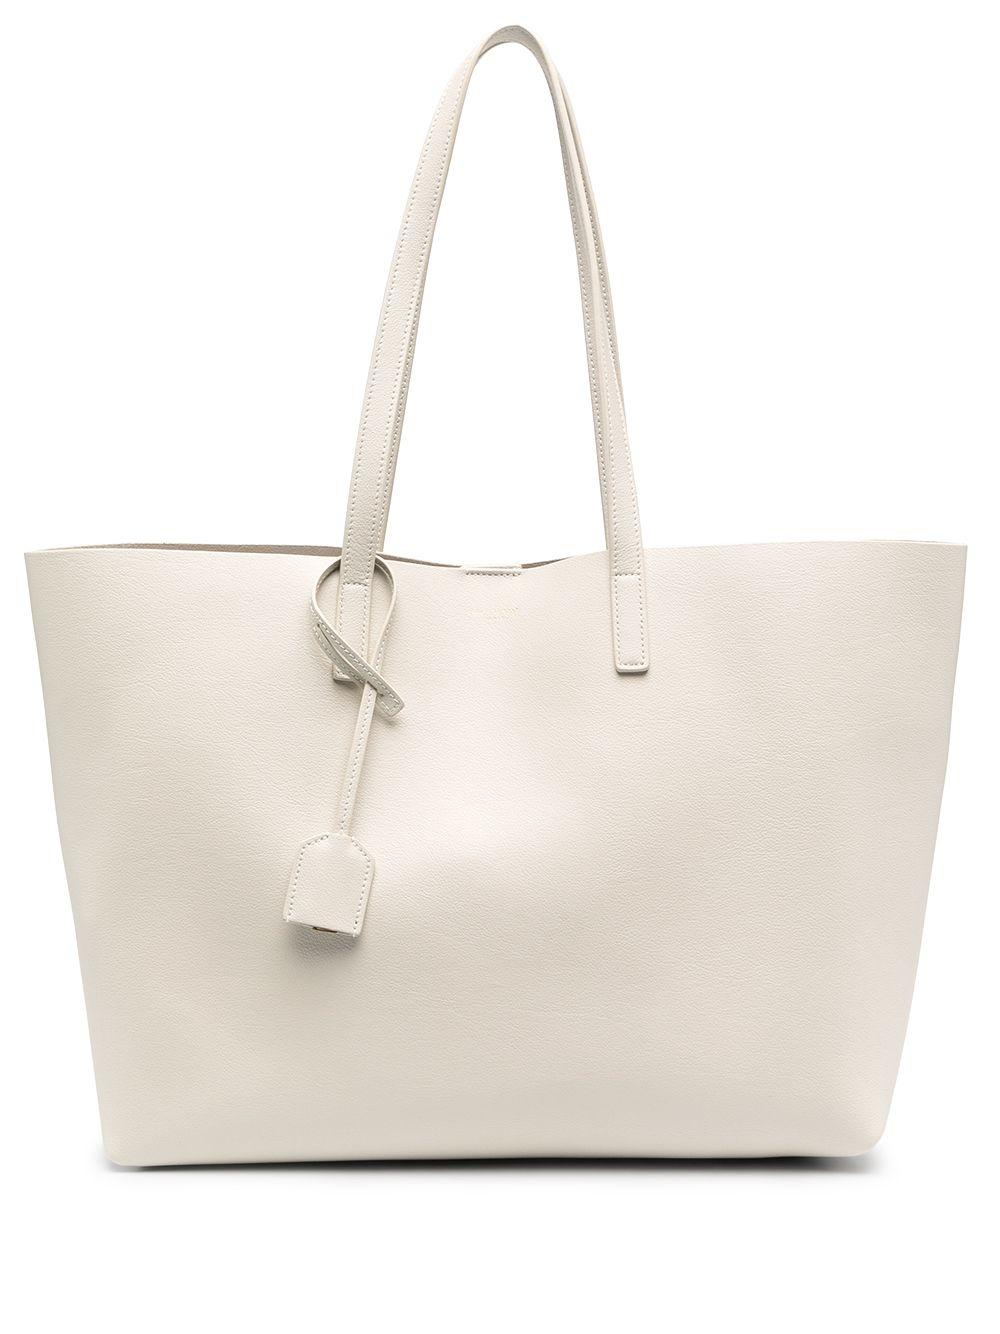 Shopping Bag Tote